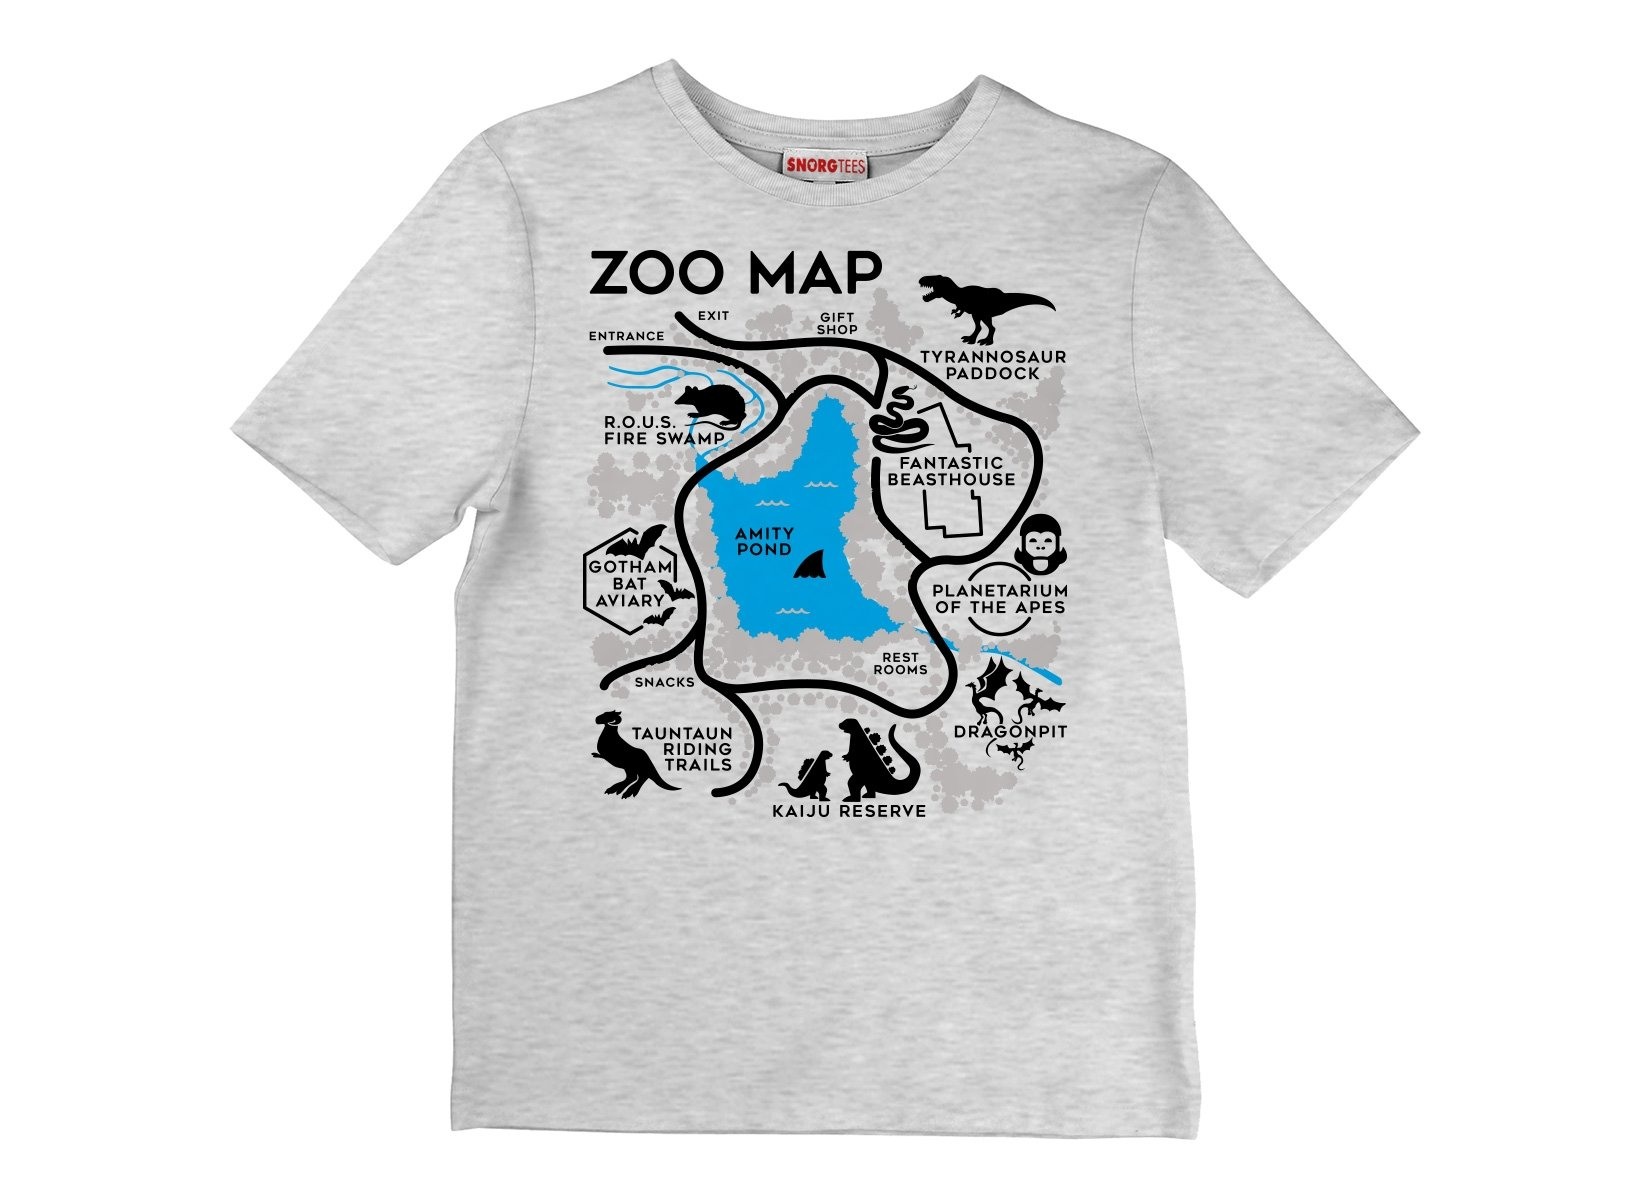 Zoo Map on Kids T-Shirt